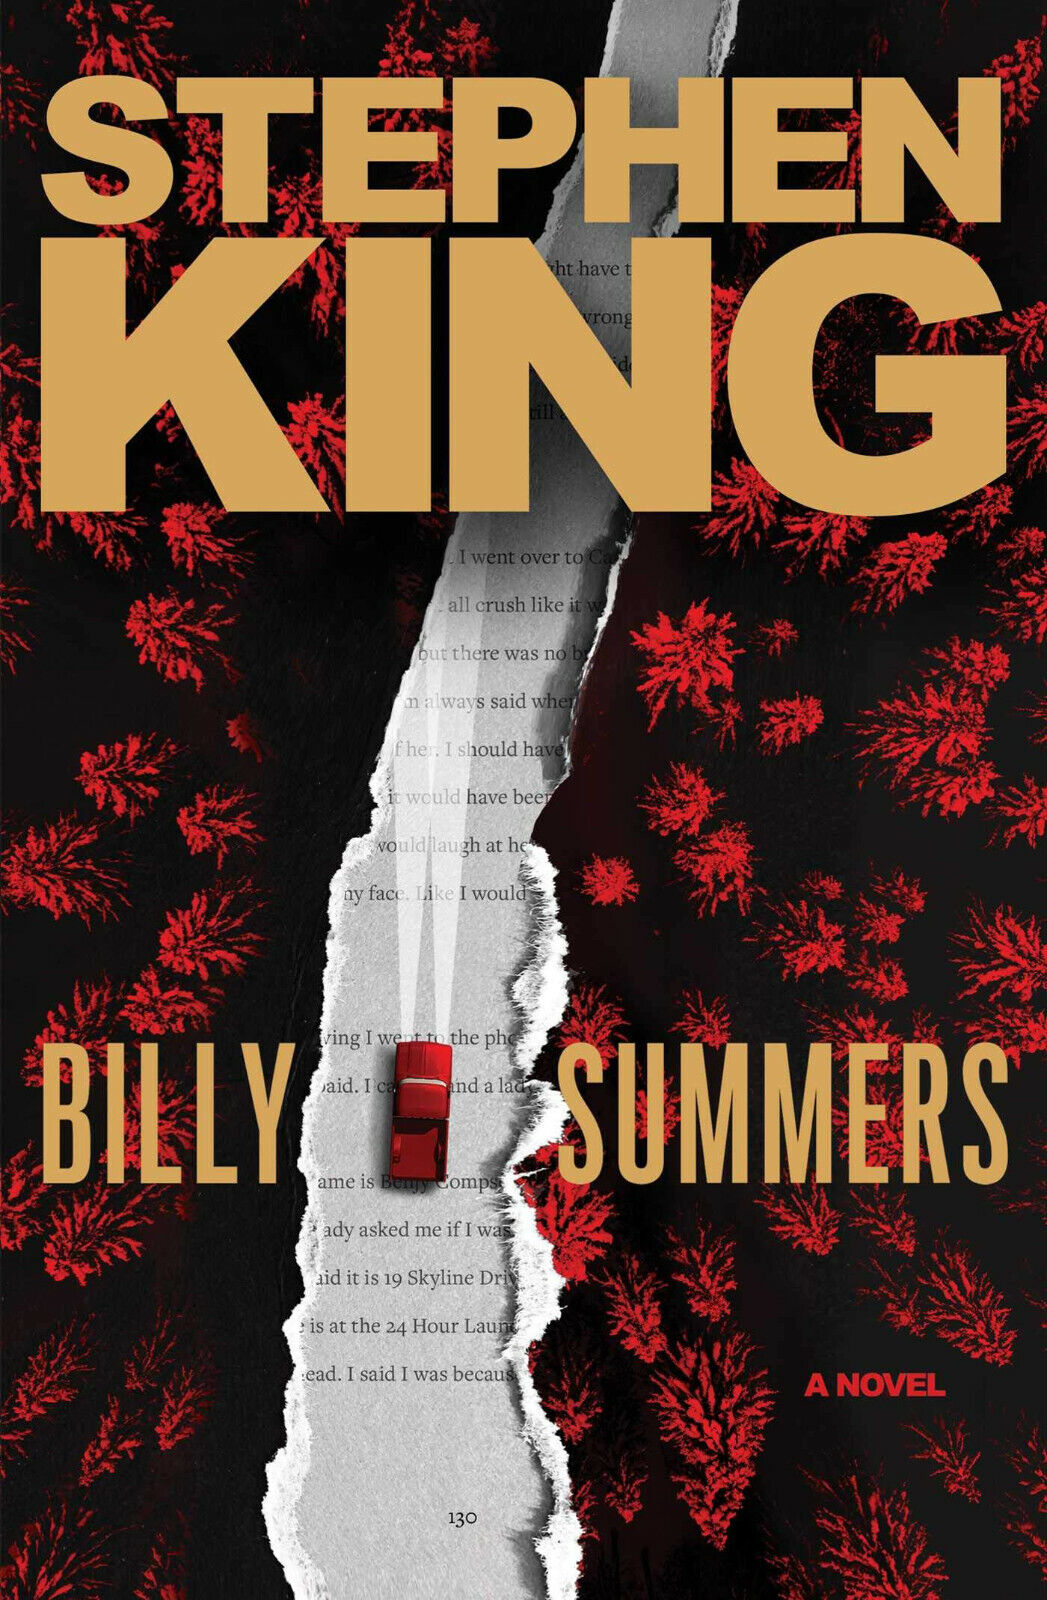 Billy Summers by Stephen King (Hardcover, 2021)